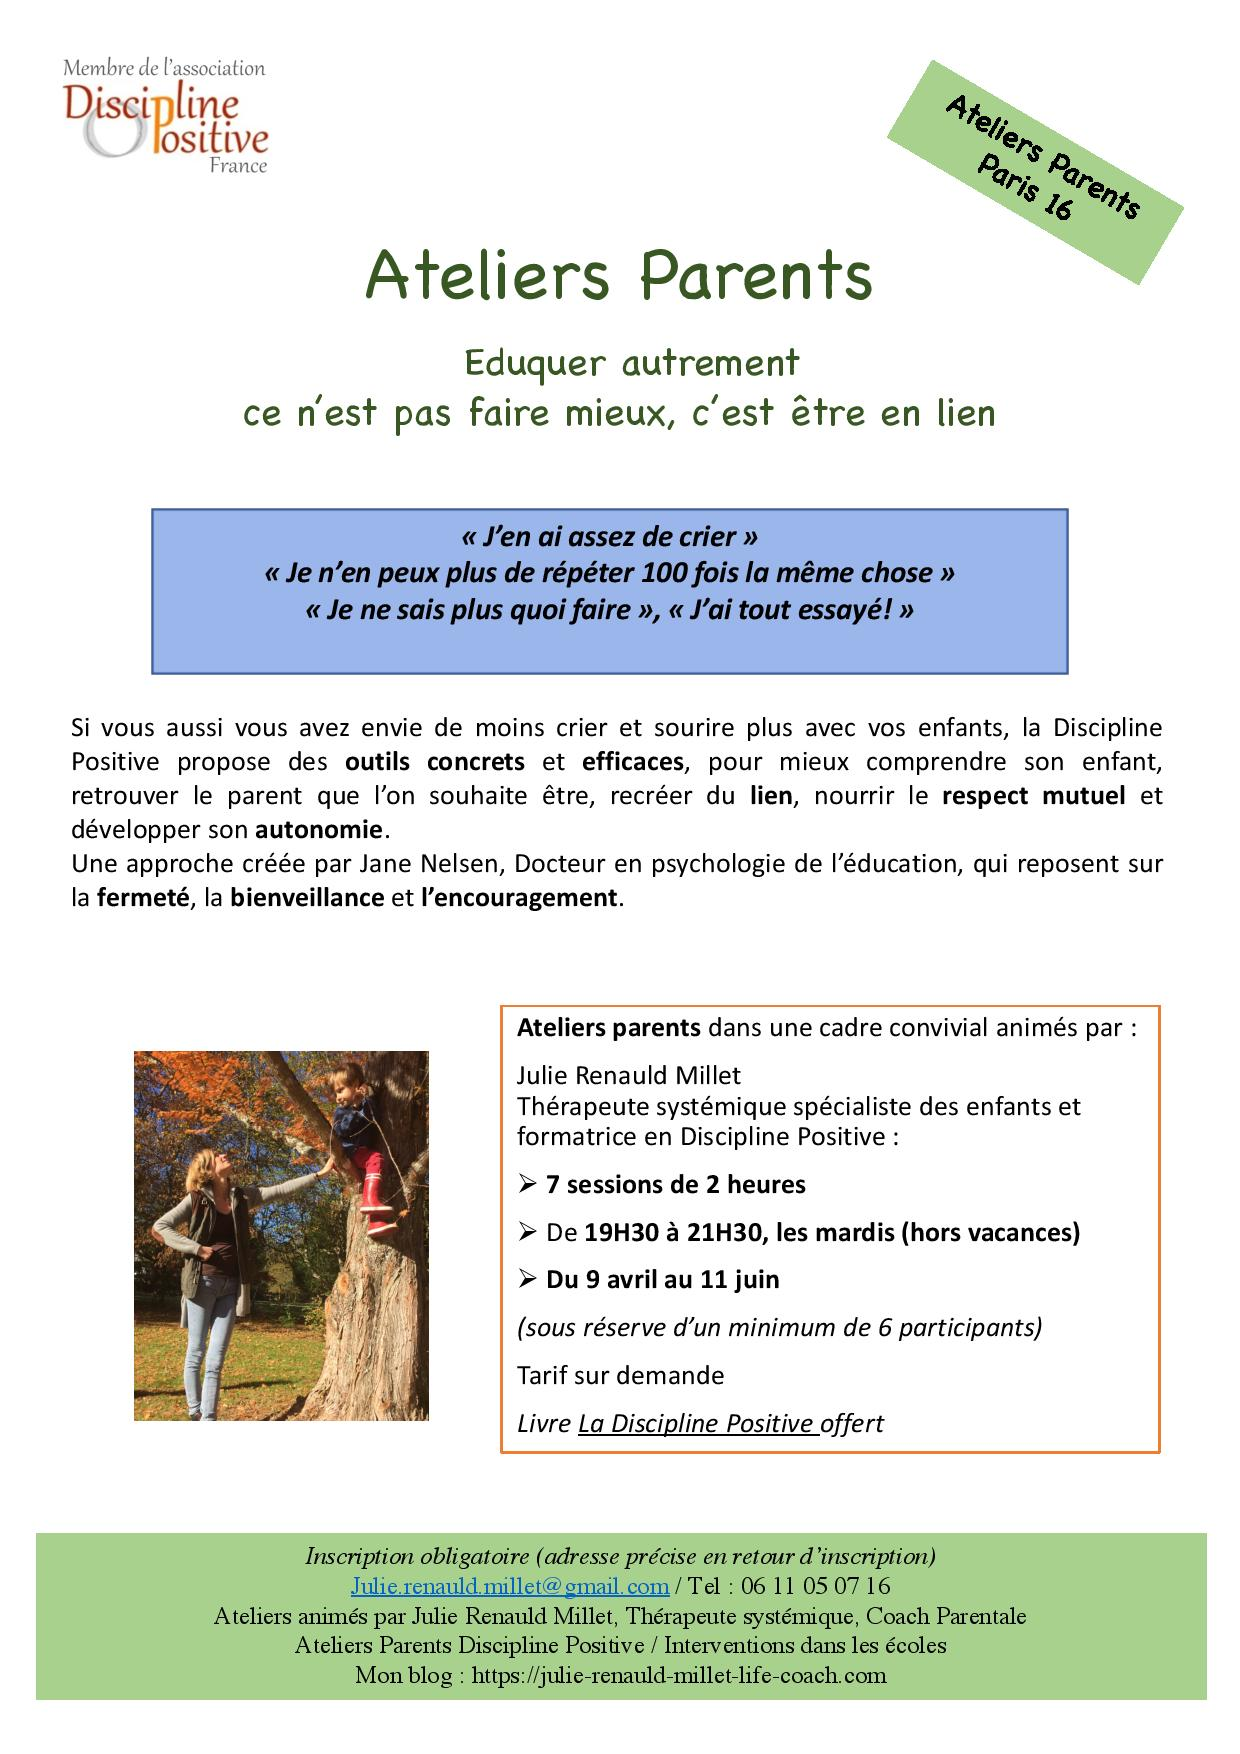 invit ateliers7 avril-juin FB-page-001